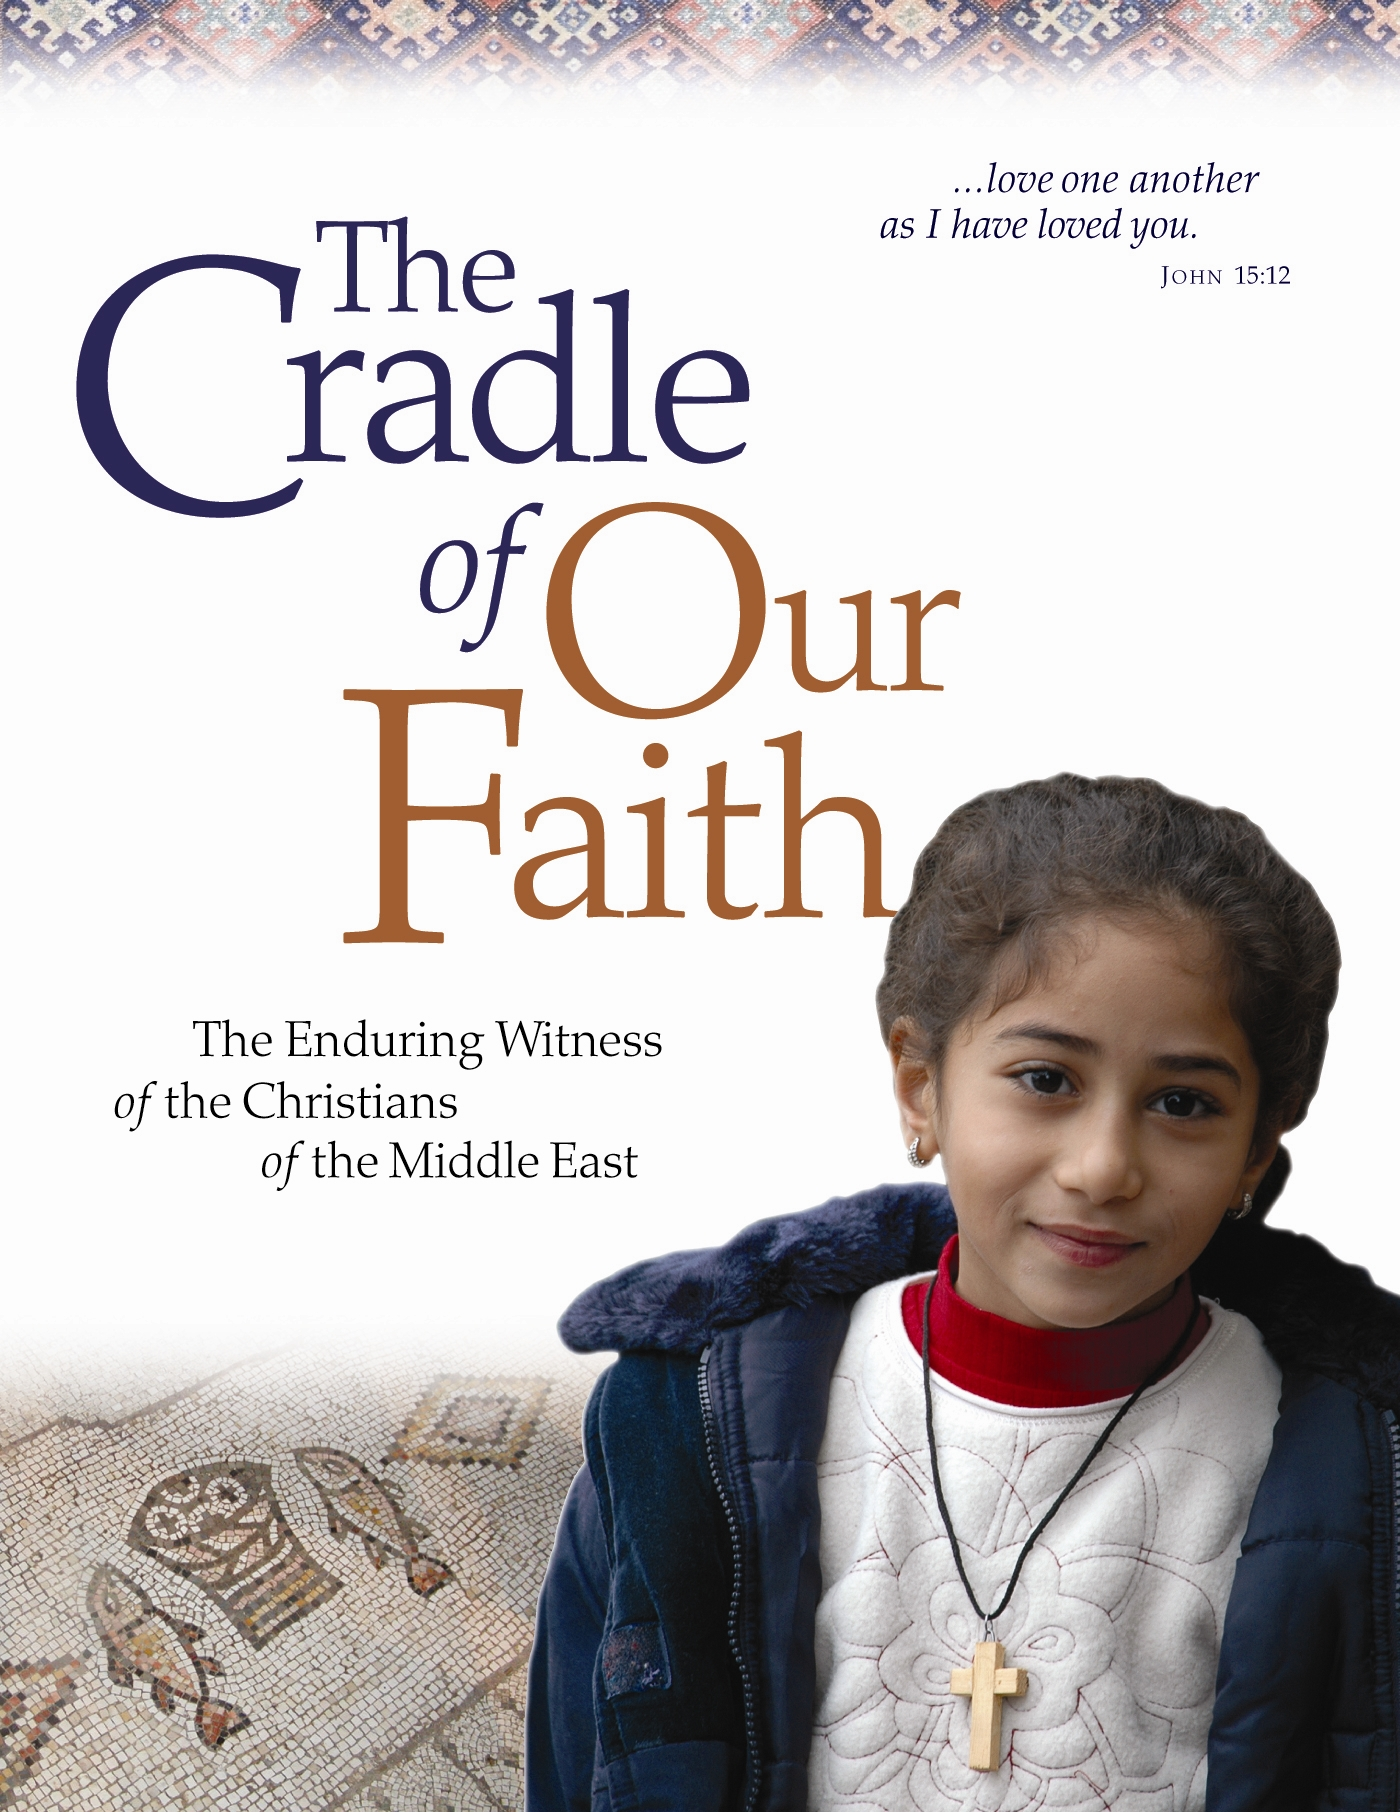 Image of The Cradle of Our Faith, The enduring witness of the Christians of the Middle East